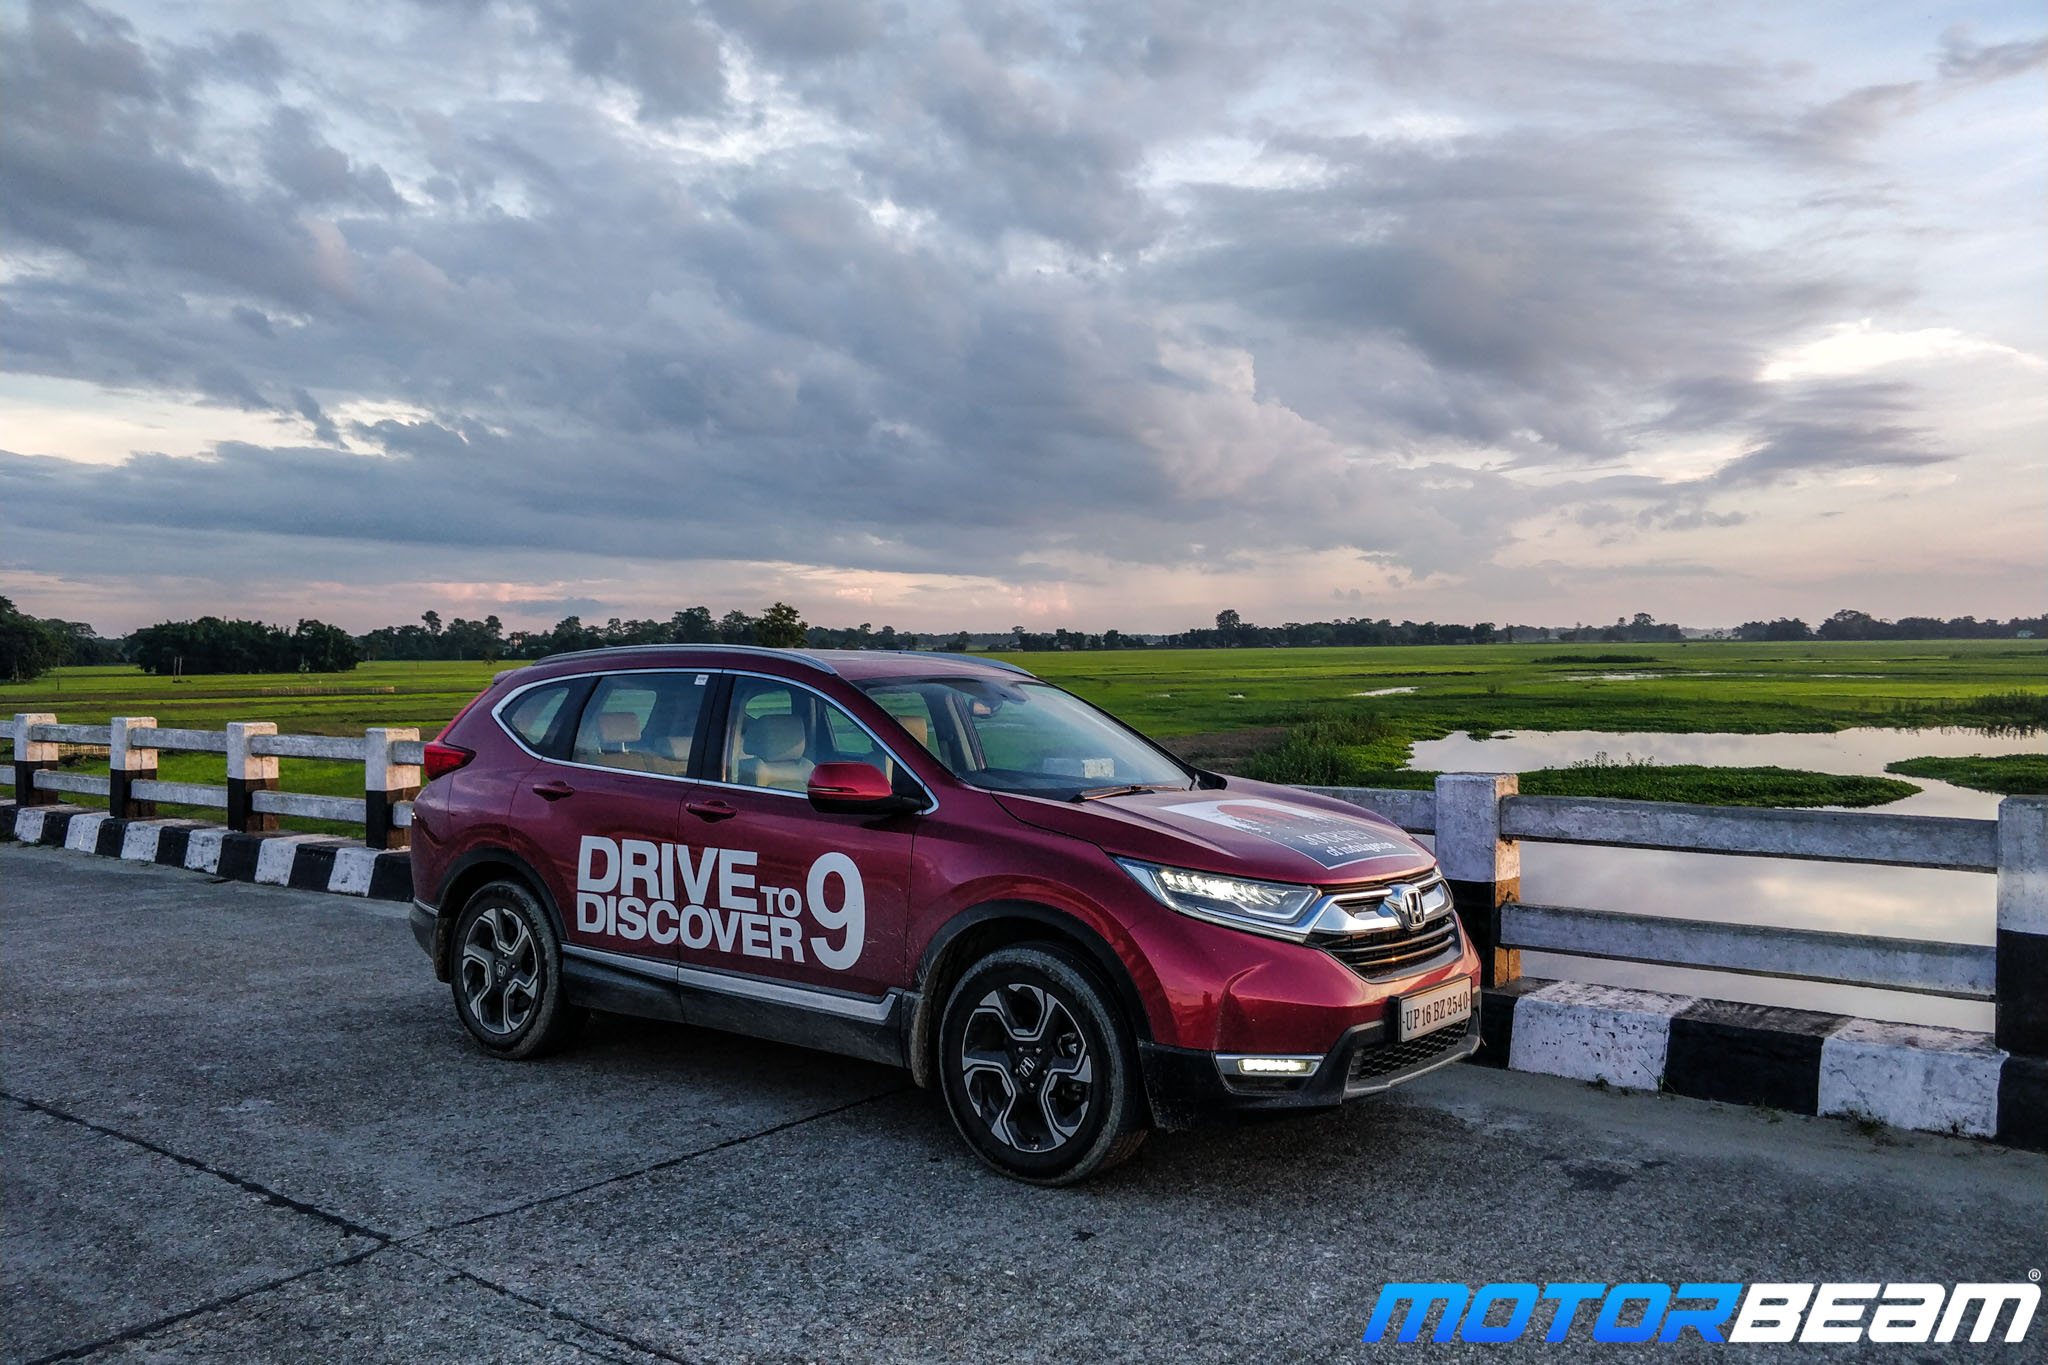 Honda Drive To Discover 9